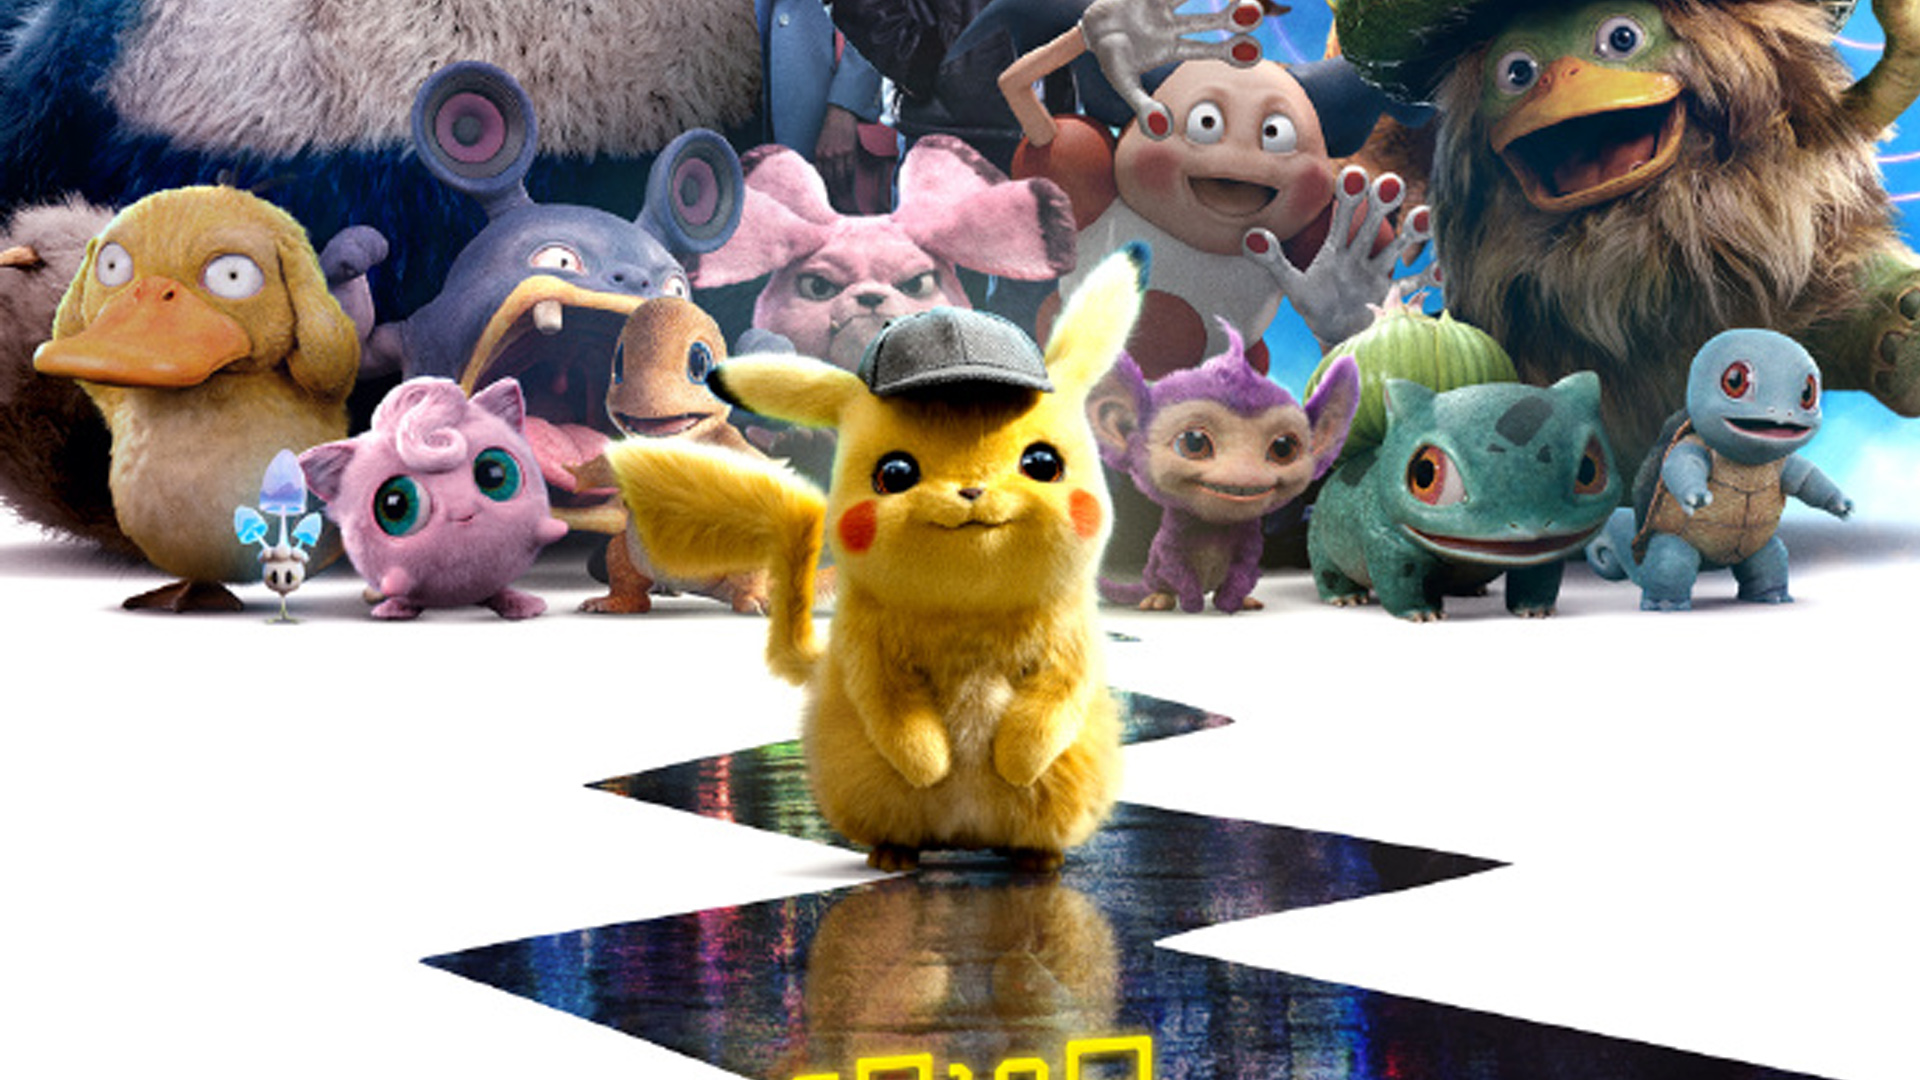 The New Detective Pikachu Chinese Posters Are Colorful And